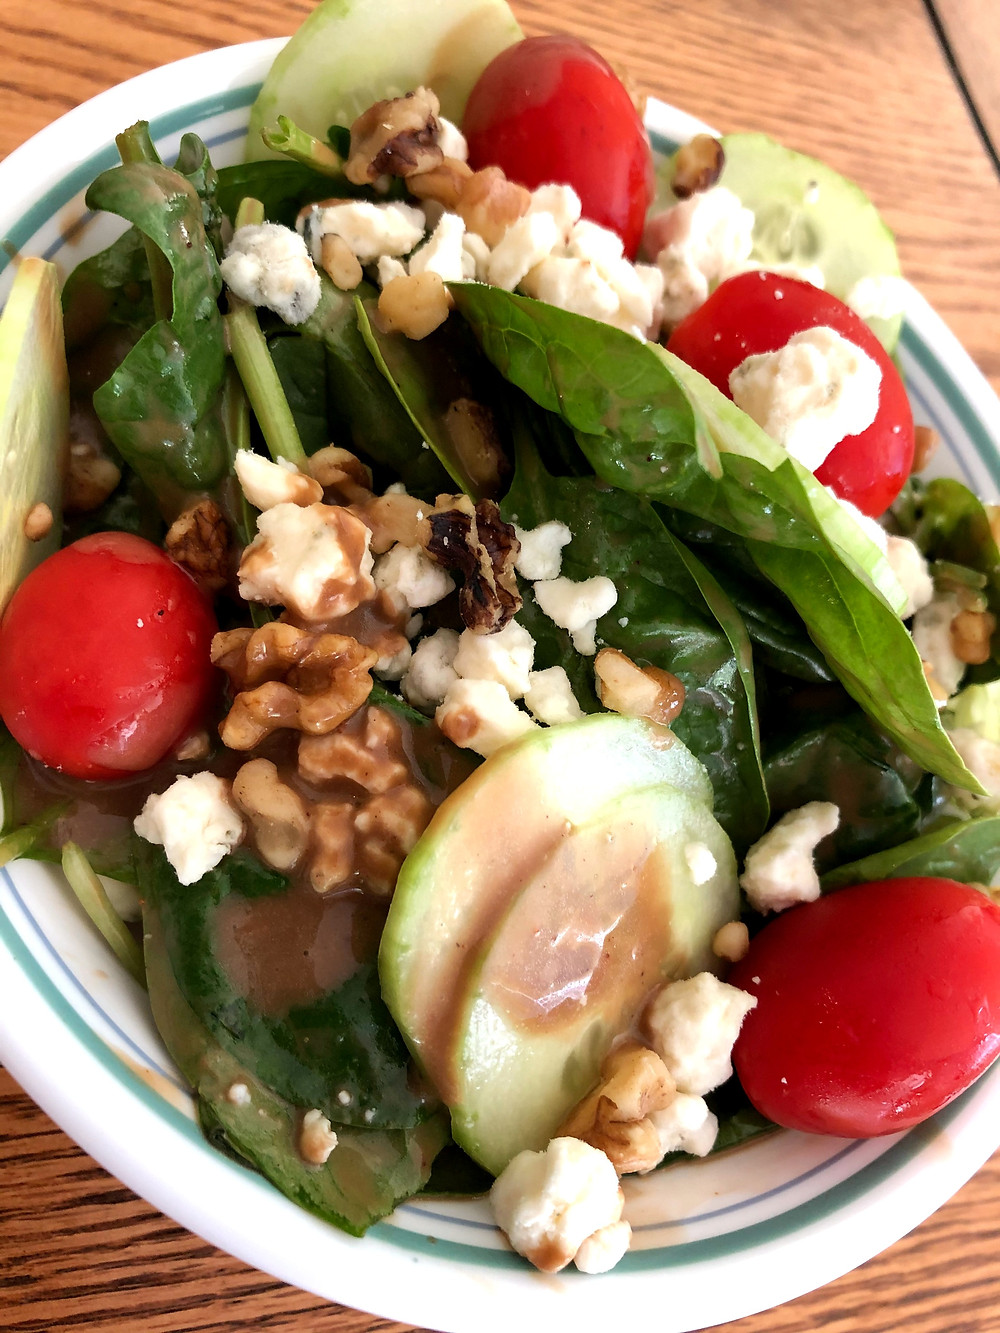 A closer photo of fresh green spinach, cucumbers, tomatoes, walnuts, cheese and brown dressing in bowl.